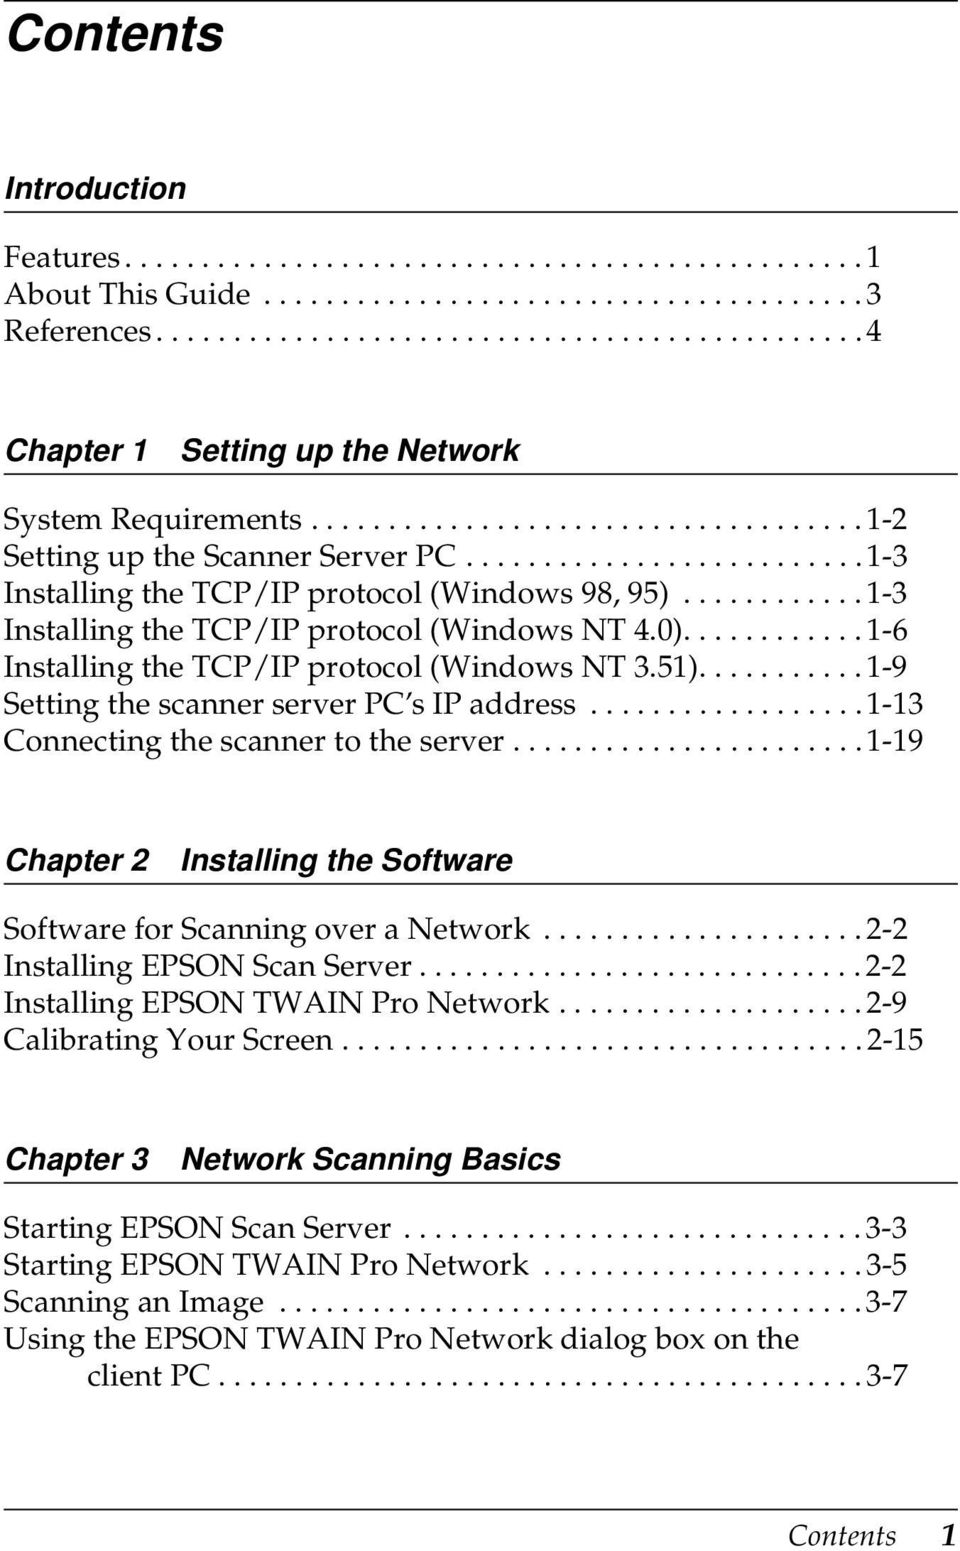 ......................... 1-3 Installing the TCP/IP protocol (Windows 98, 95)............ 1-3 Installing the TCP/IP protocol (Windows NT 4.0)............ 1-6 Installing the TCP/IP protocol (Windows NT 3.